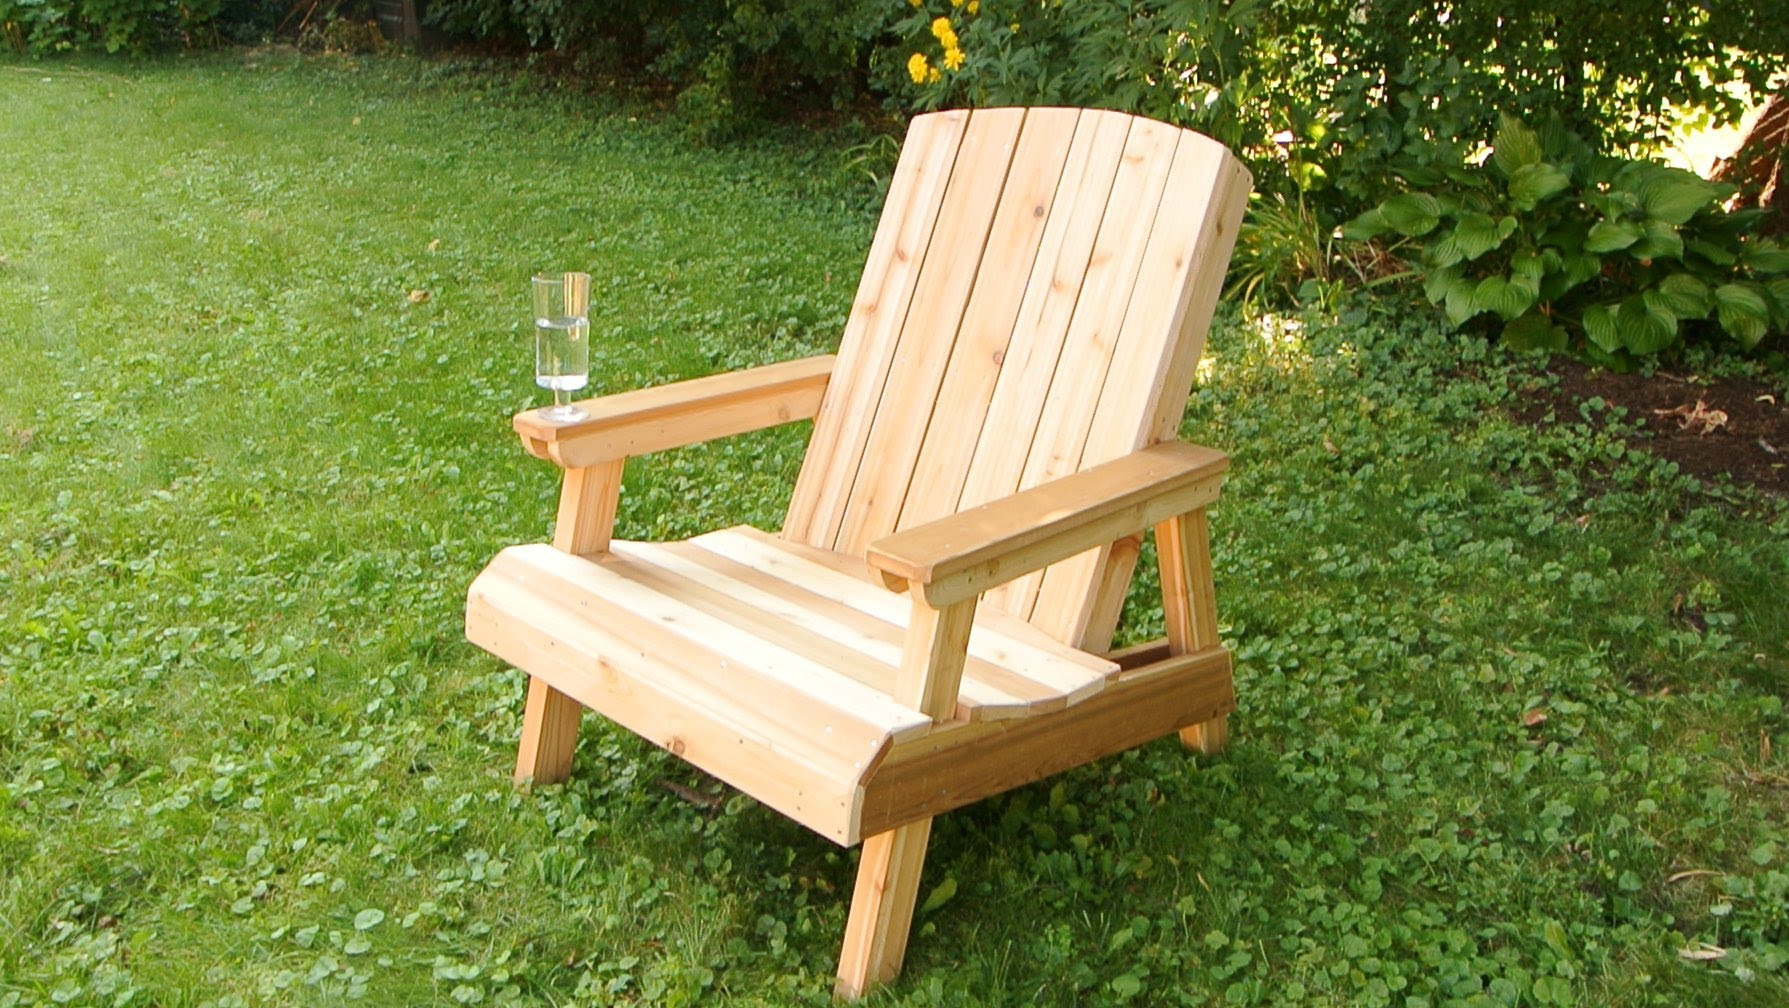 Wanna Build An Adirondack Chair For Your Patio Watch This